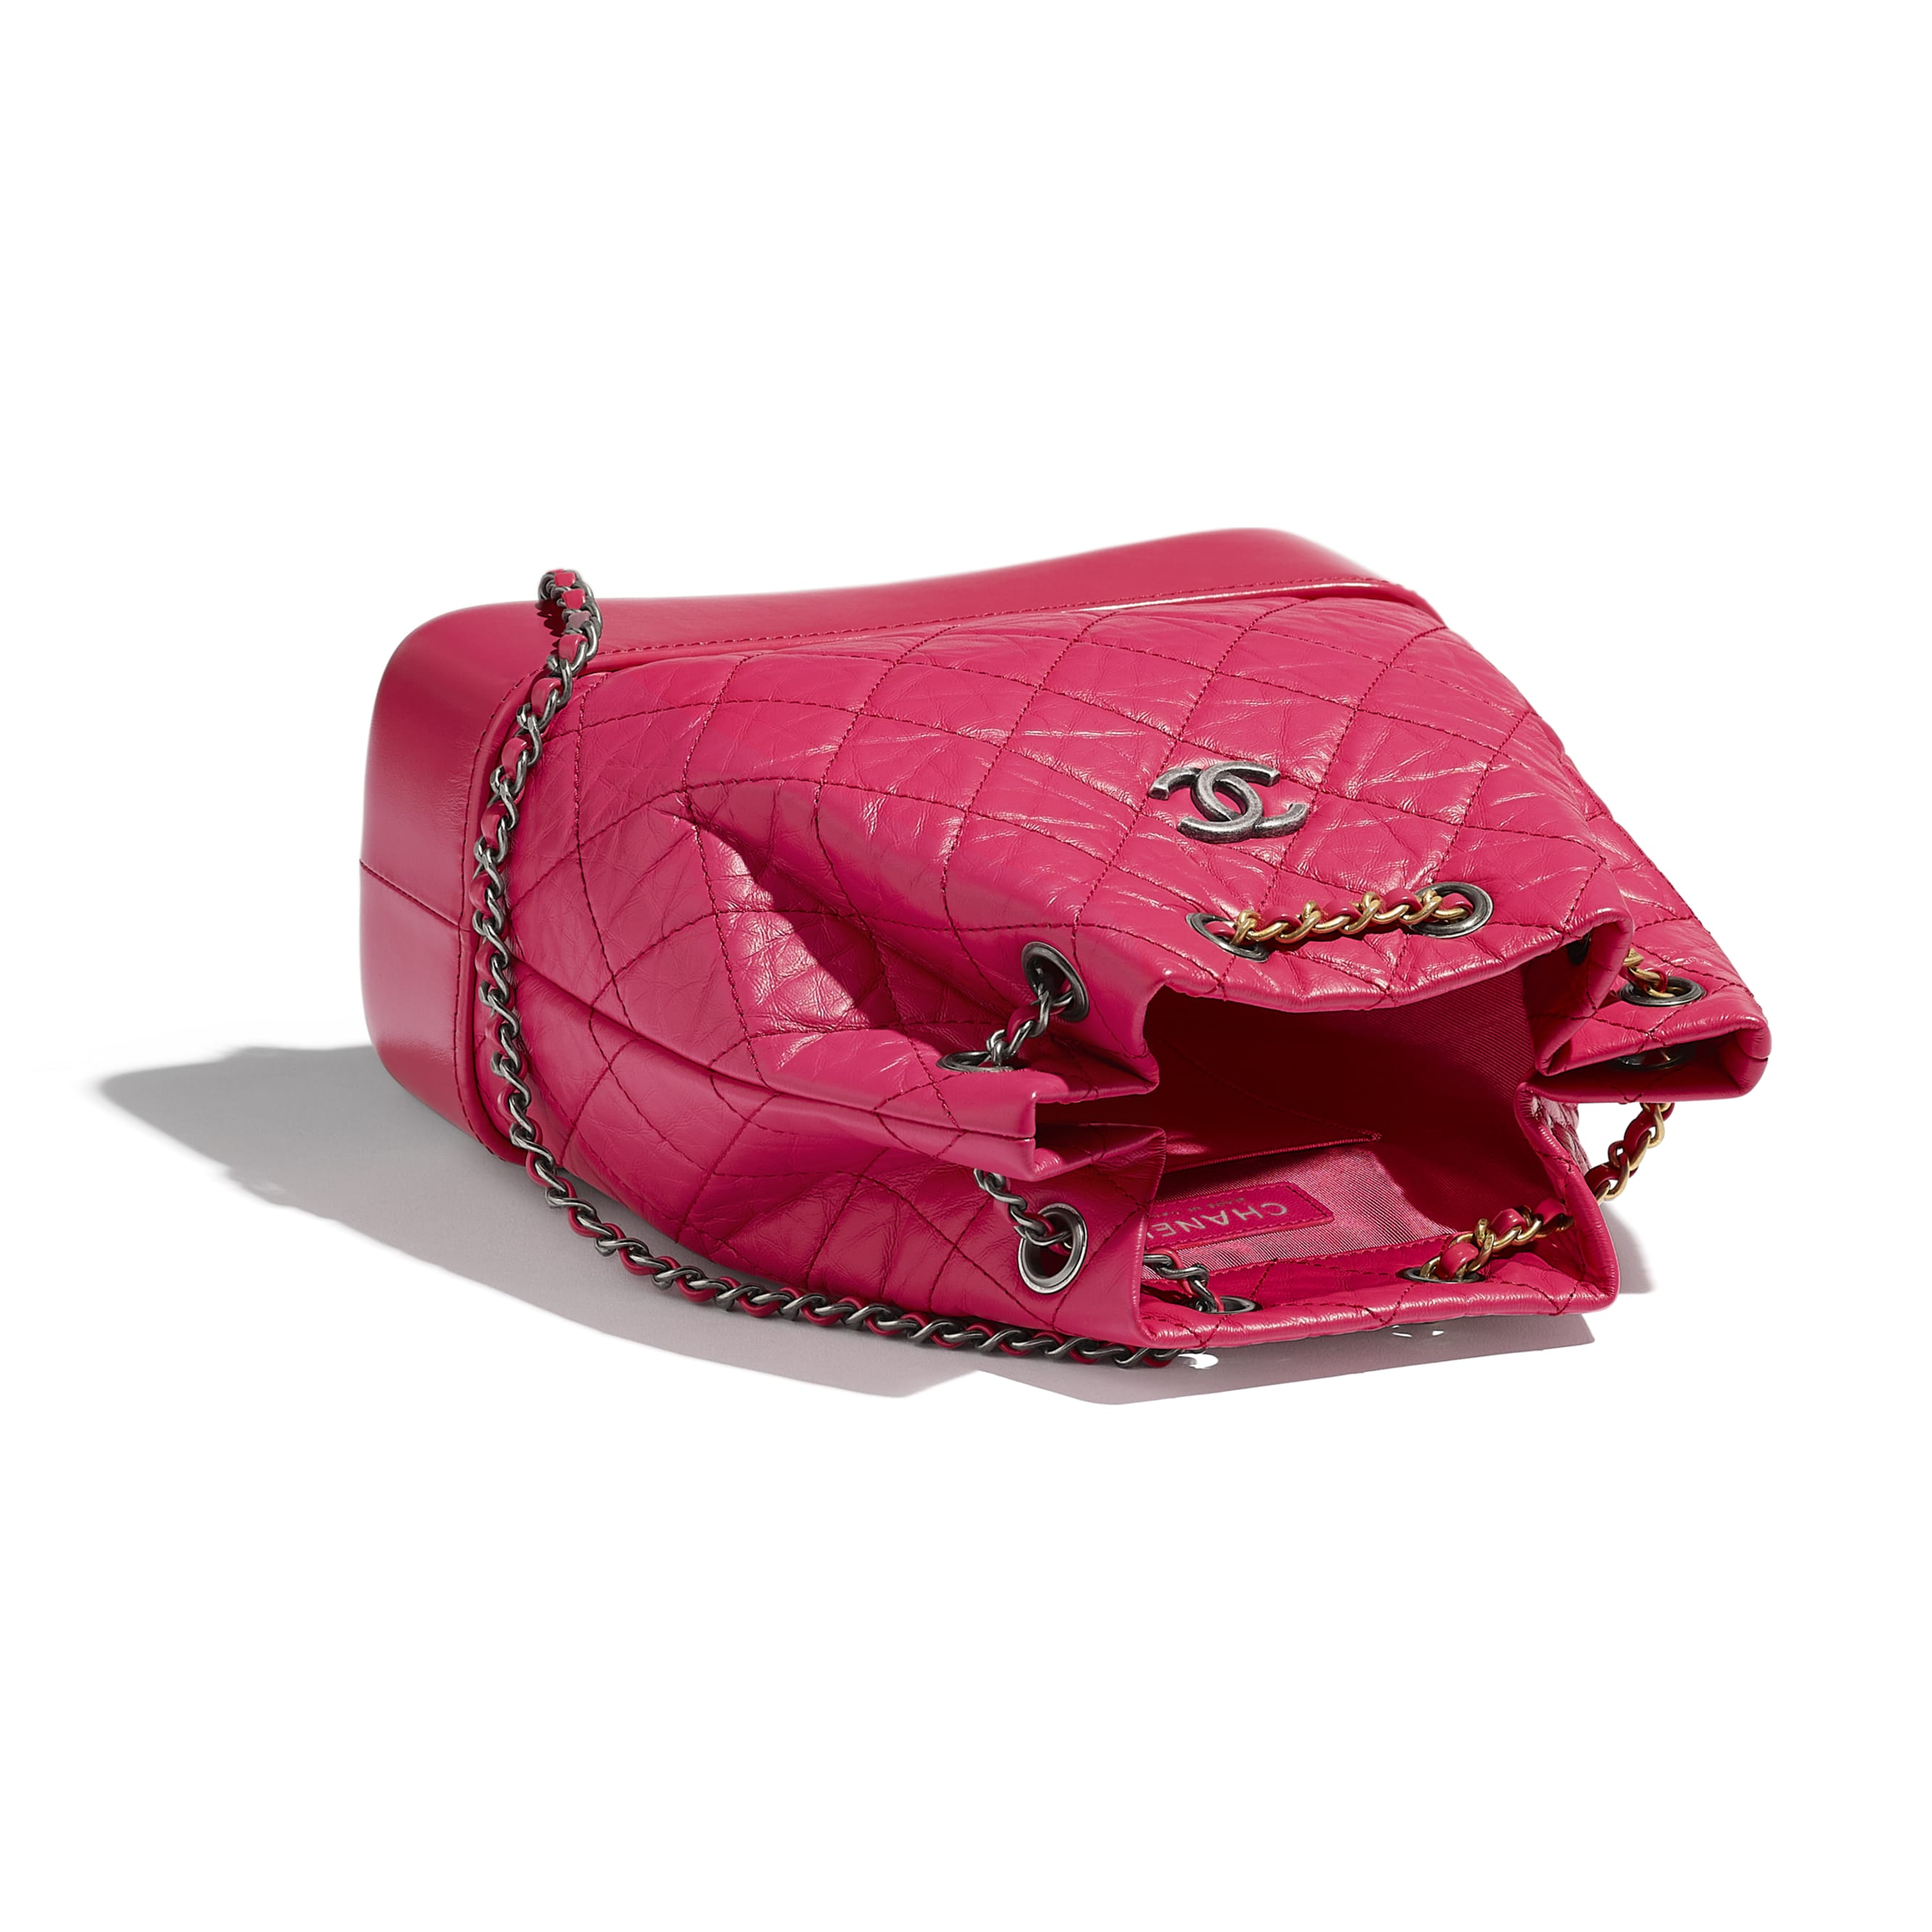 CHANEL'S GABRIELLE Small Backpack - Pink - Aged Calfskin, Smooth Calfskin, Gold-Tone, Silver-Tone & Ruthenium-Finish Metal - CHANEL - Other view - see standard sized version